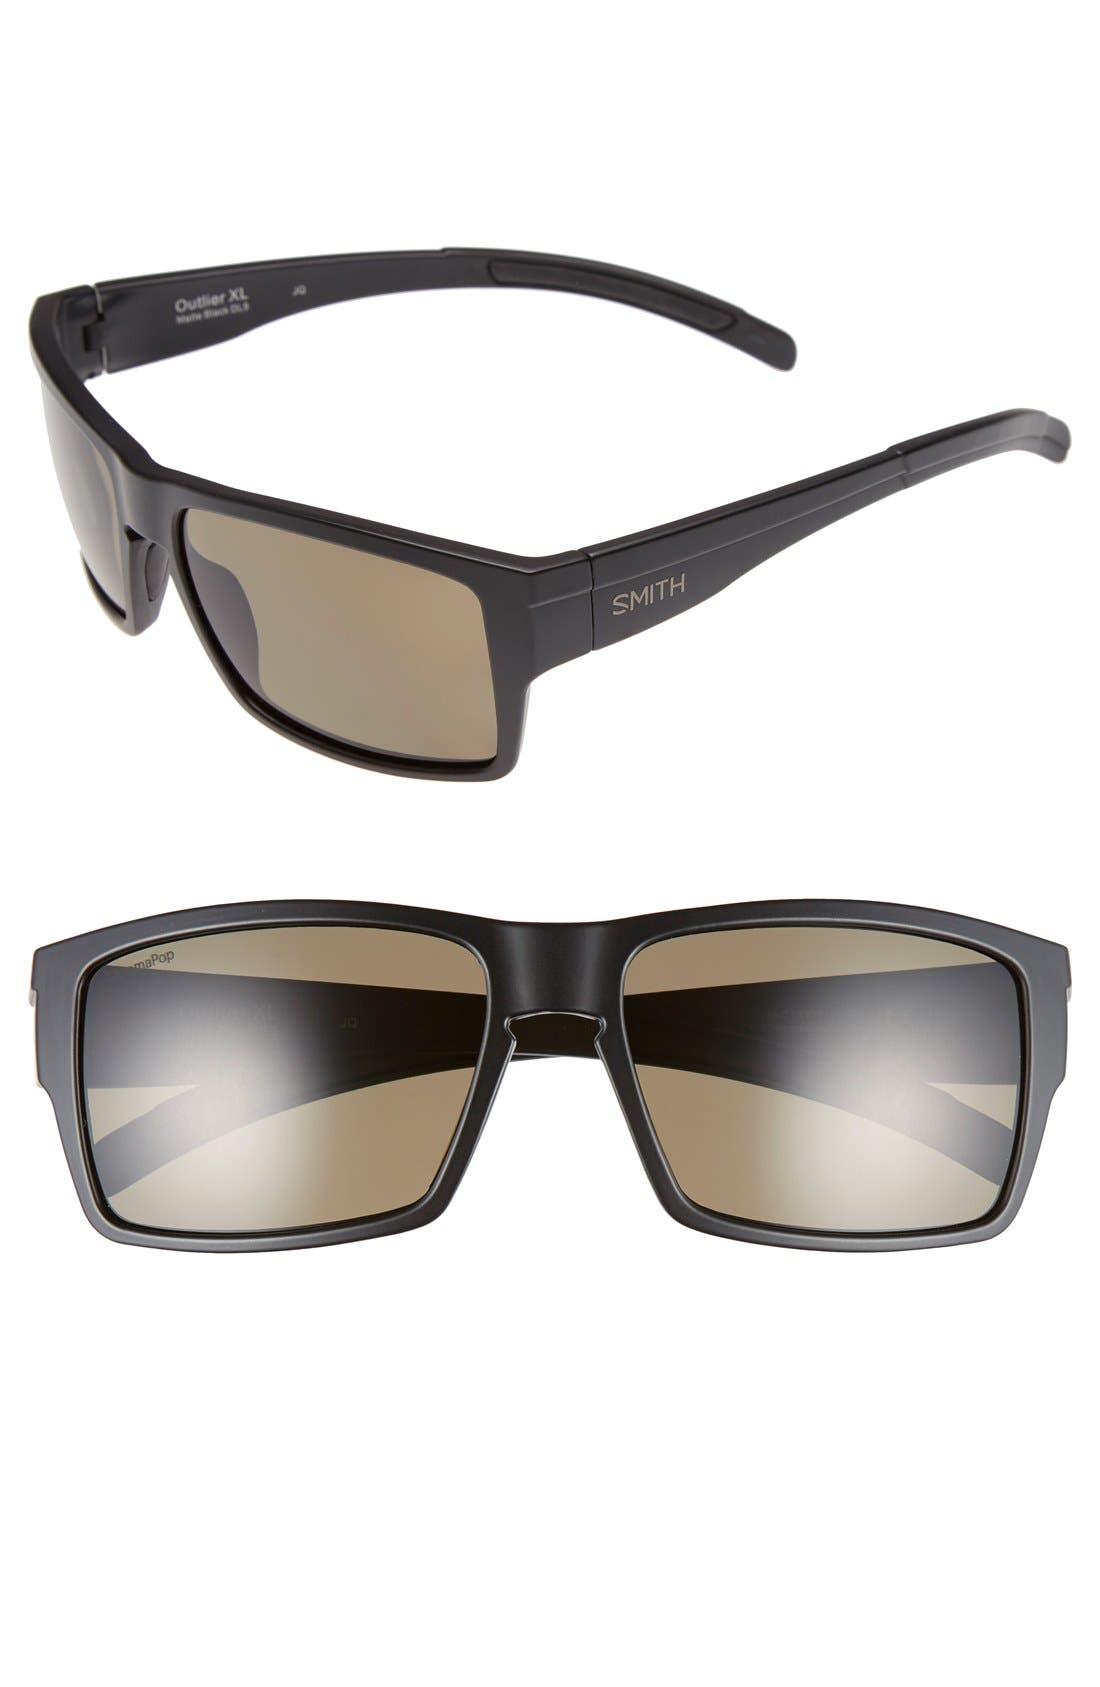 Main Image - Smith 'Outlier XL' 56mm Polarized Sunglasses